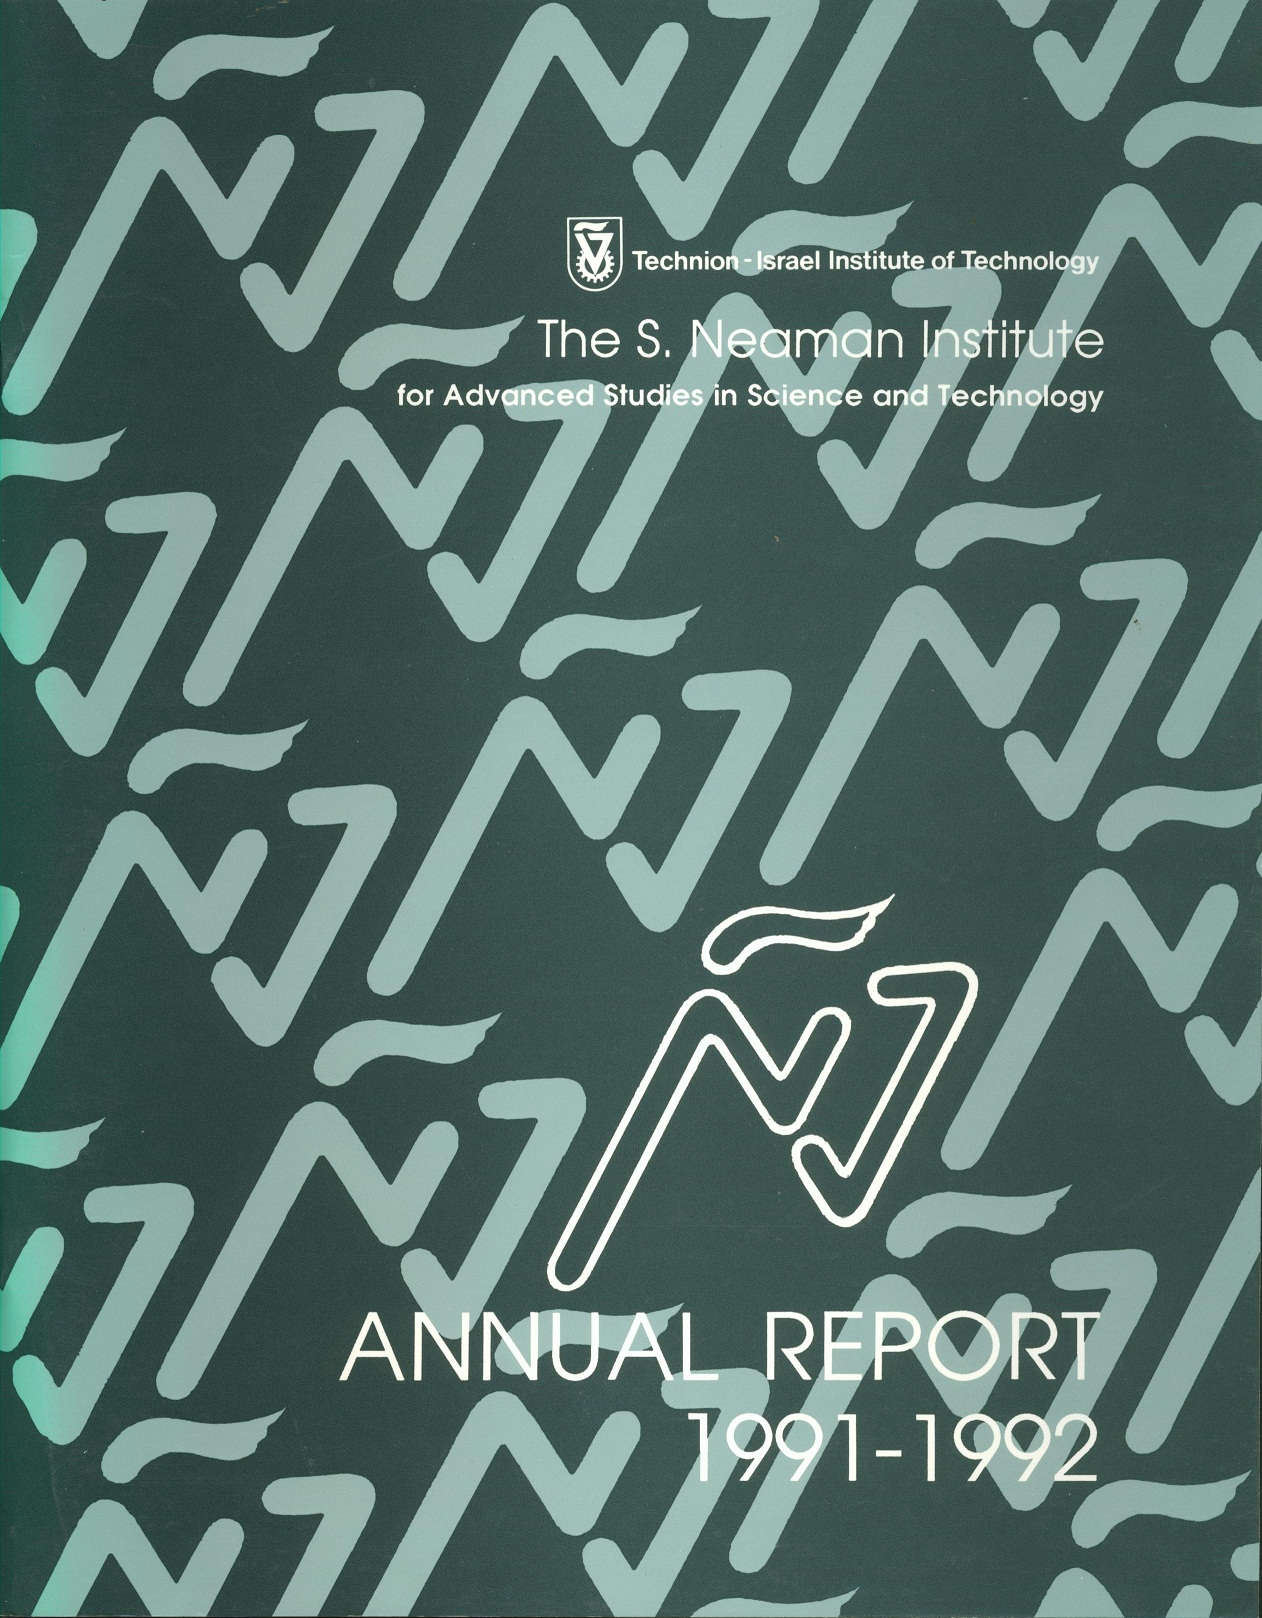 Annual Report 1991-1992 Samuel Neaman Institute